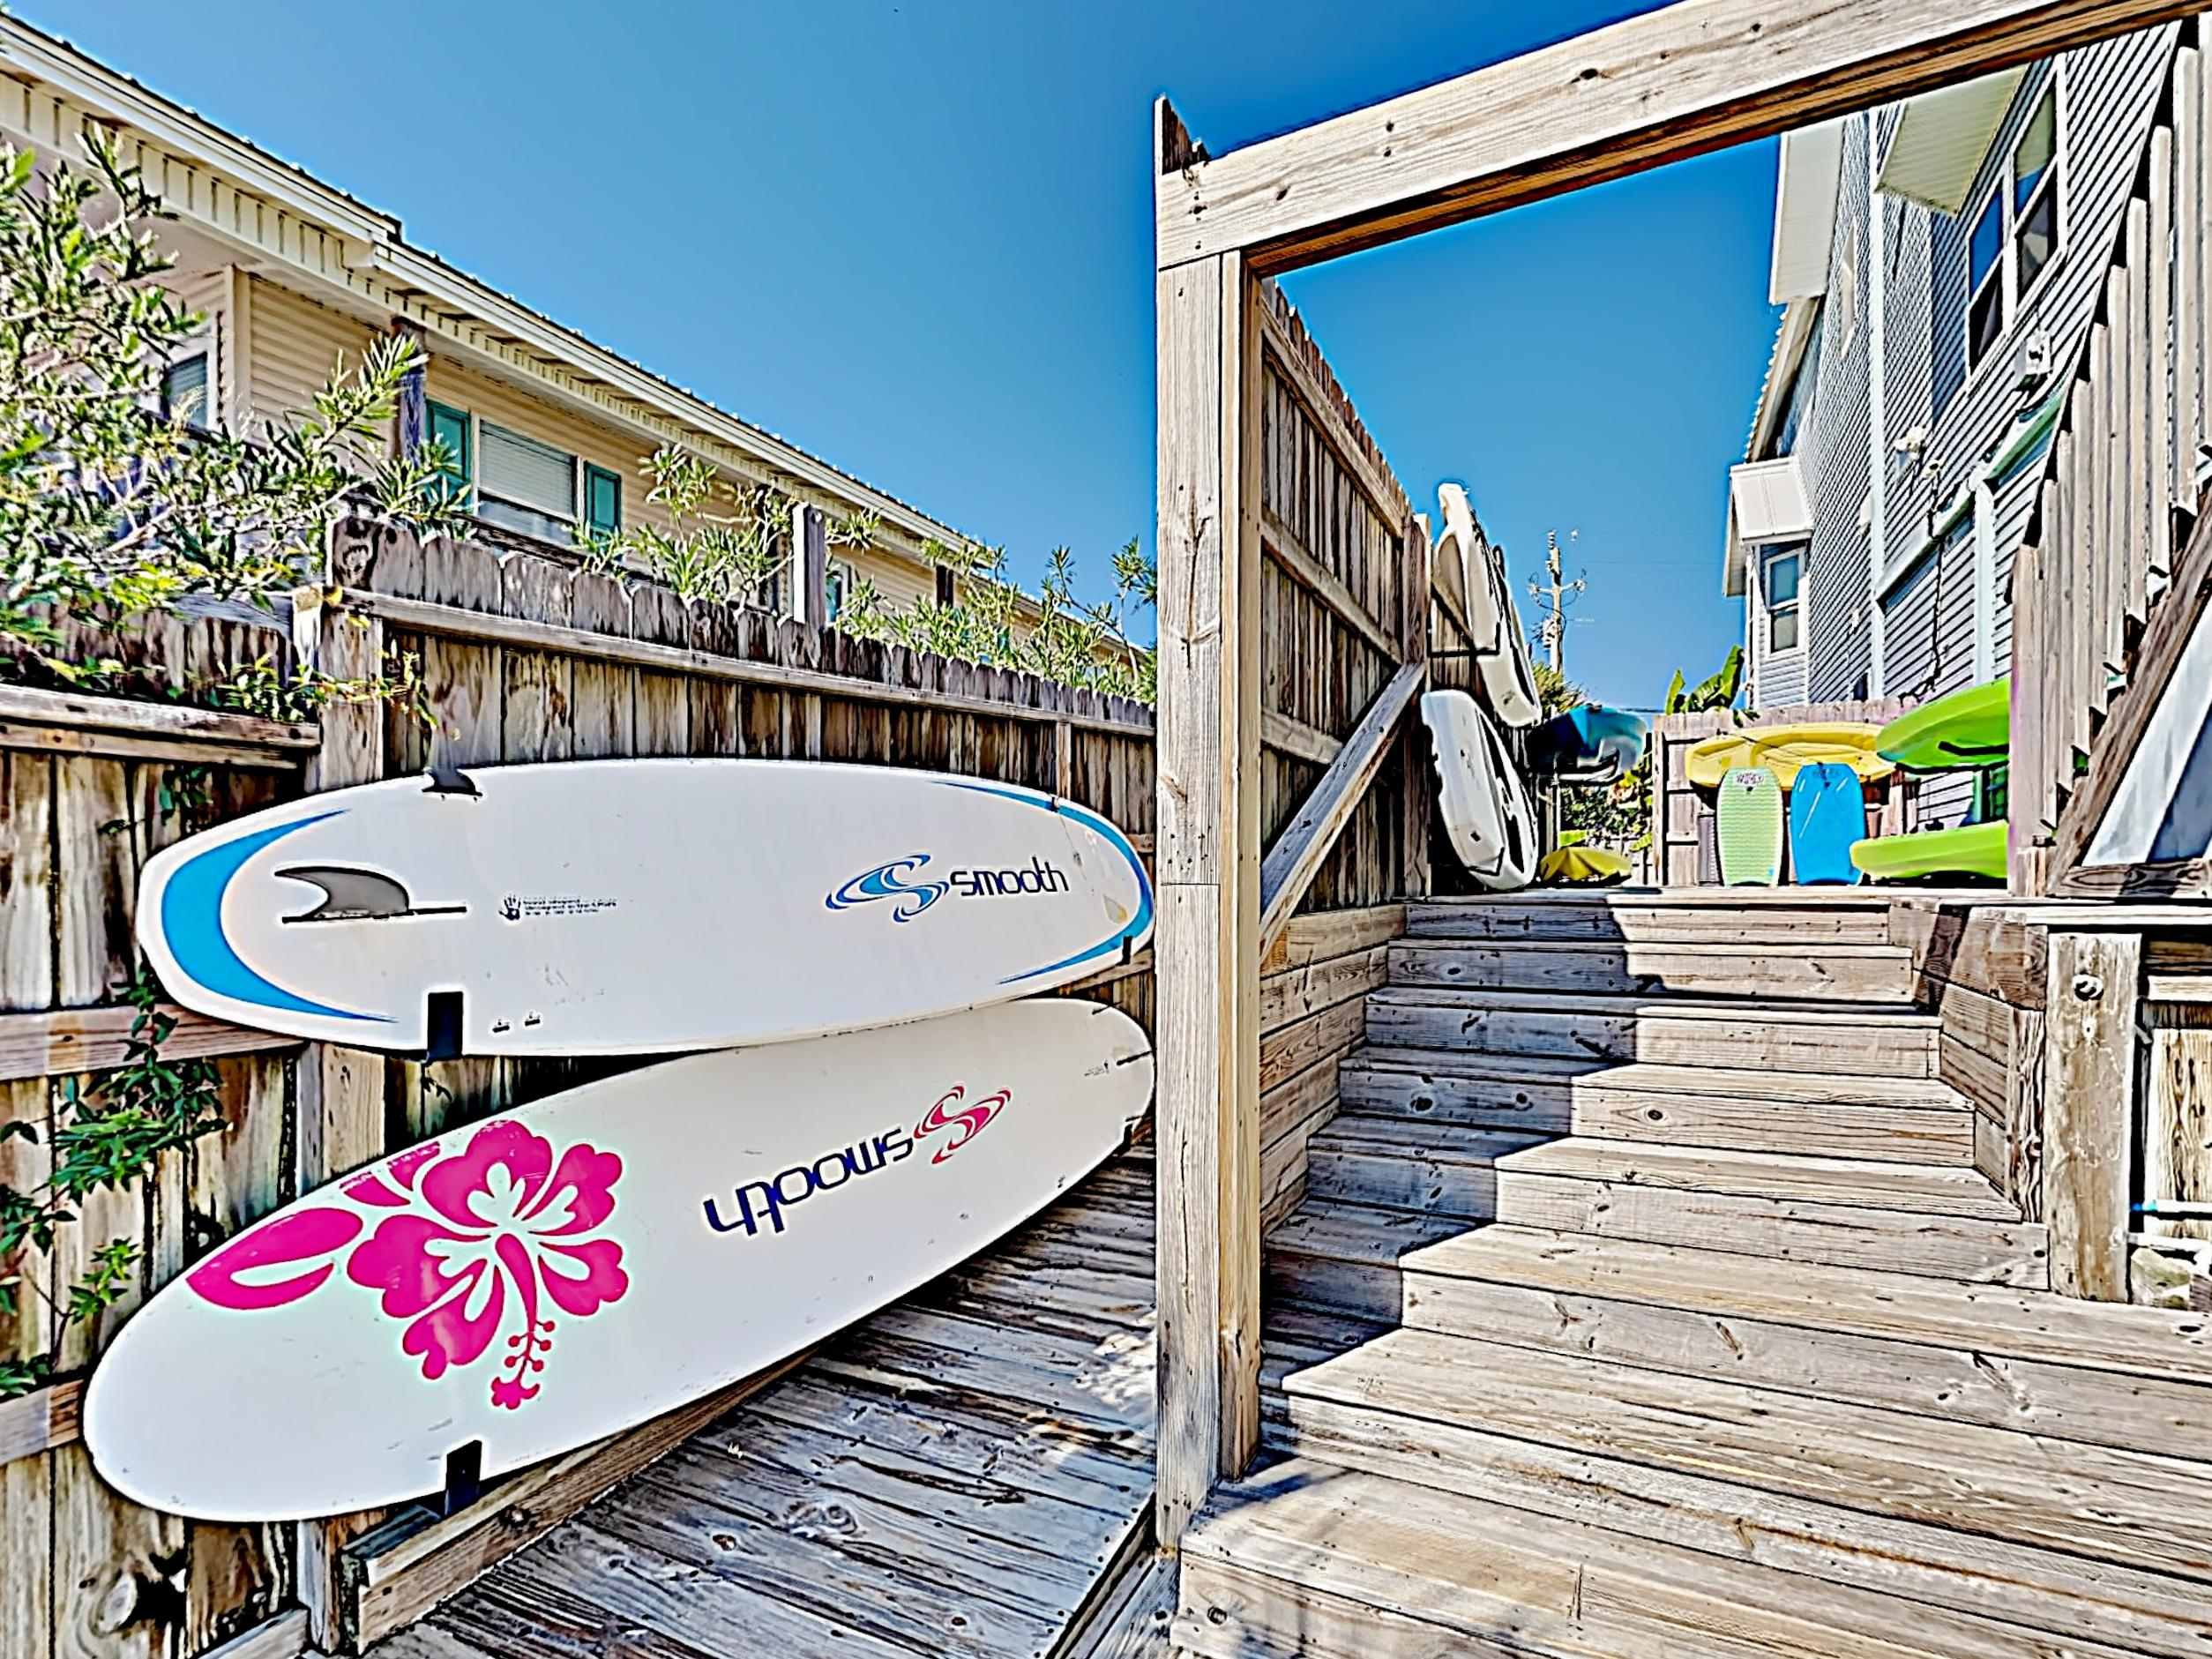 Water enthusiasts will appreciate a collection of paddle boards available for guest use.